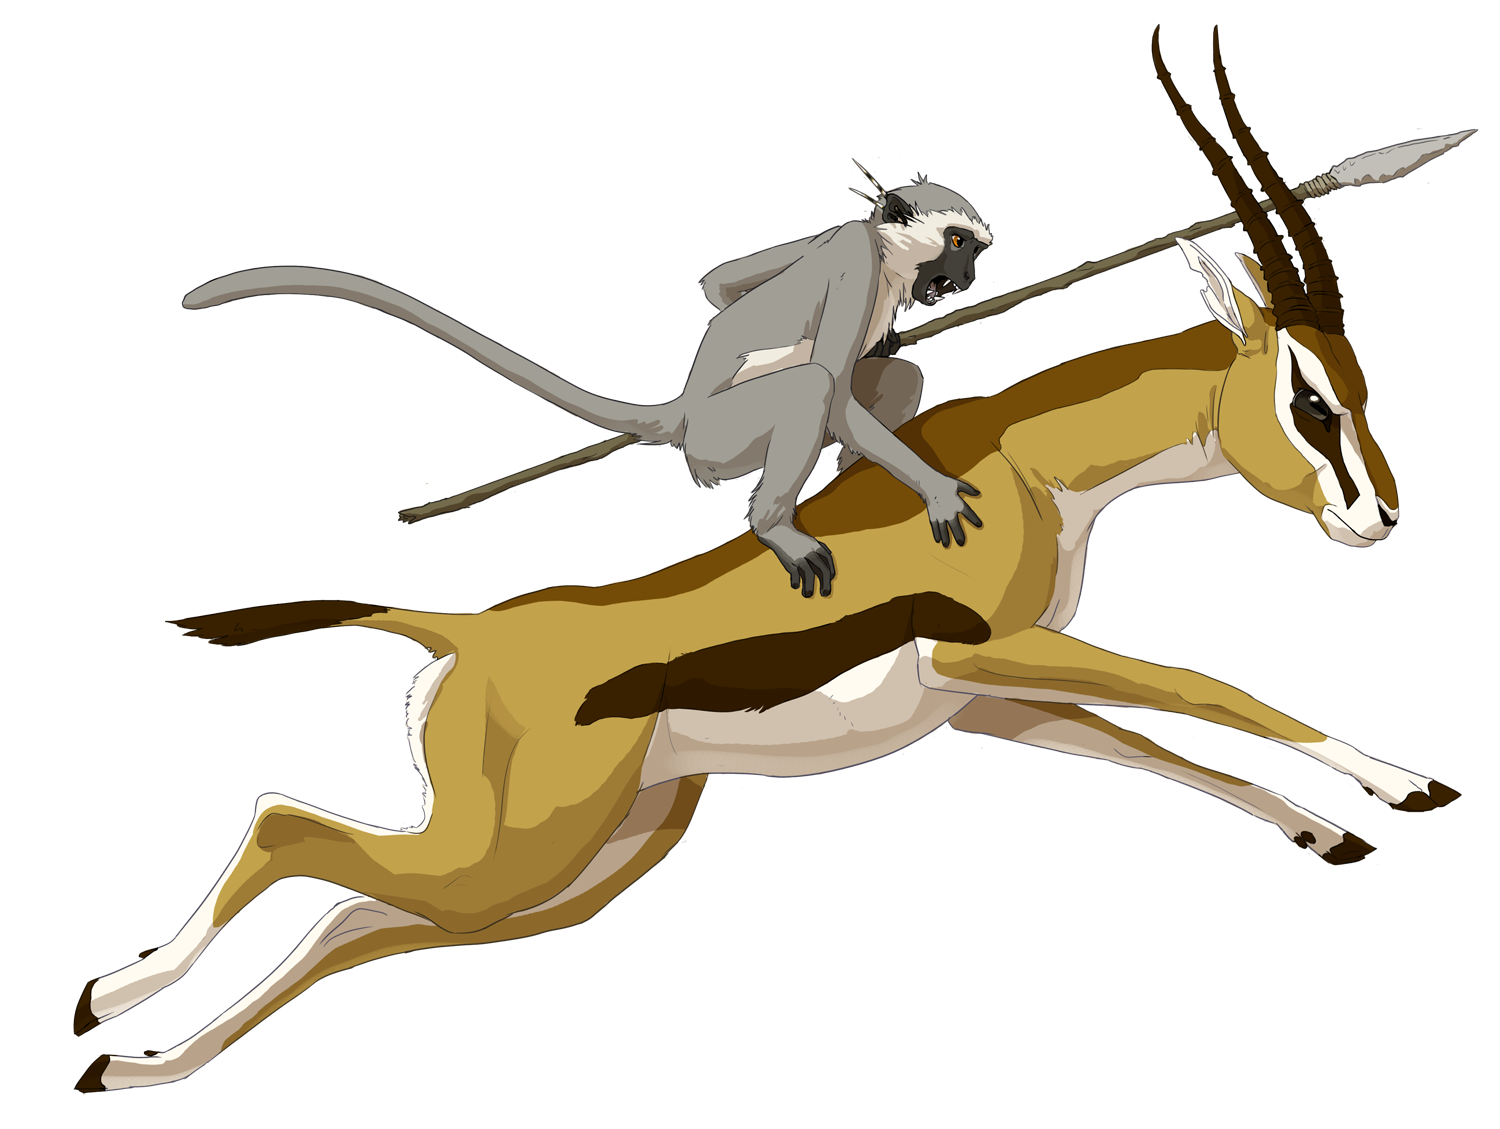 image stock Gazelle drawing. Rider by stuffed on